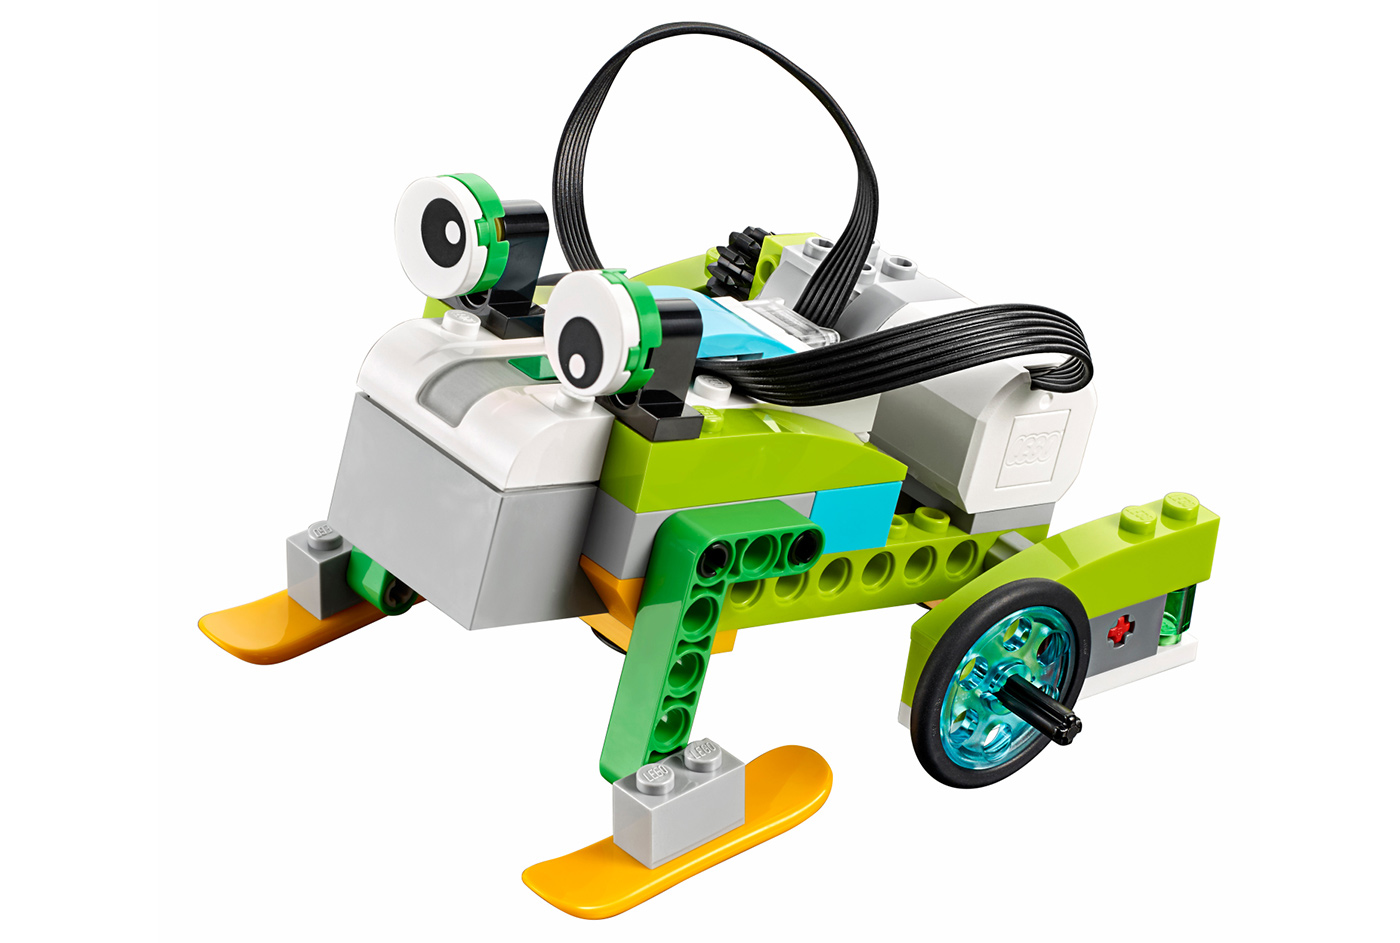 lego-wedo-2-education-2015-01-05-01.jpg